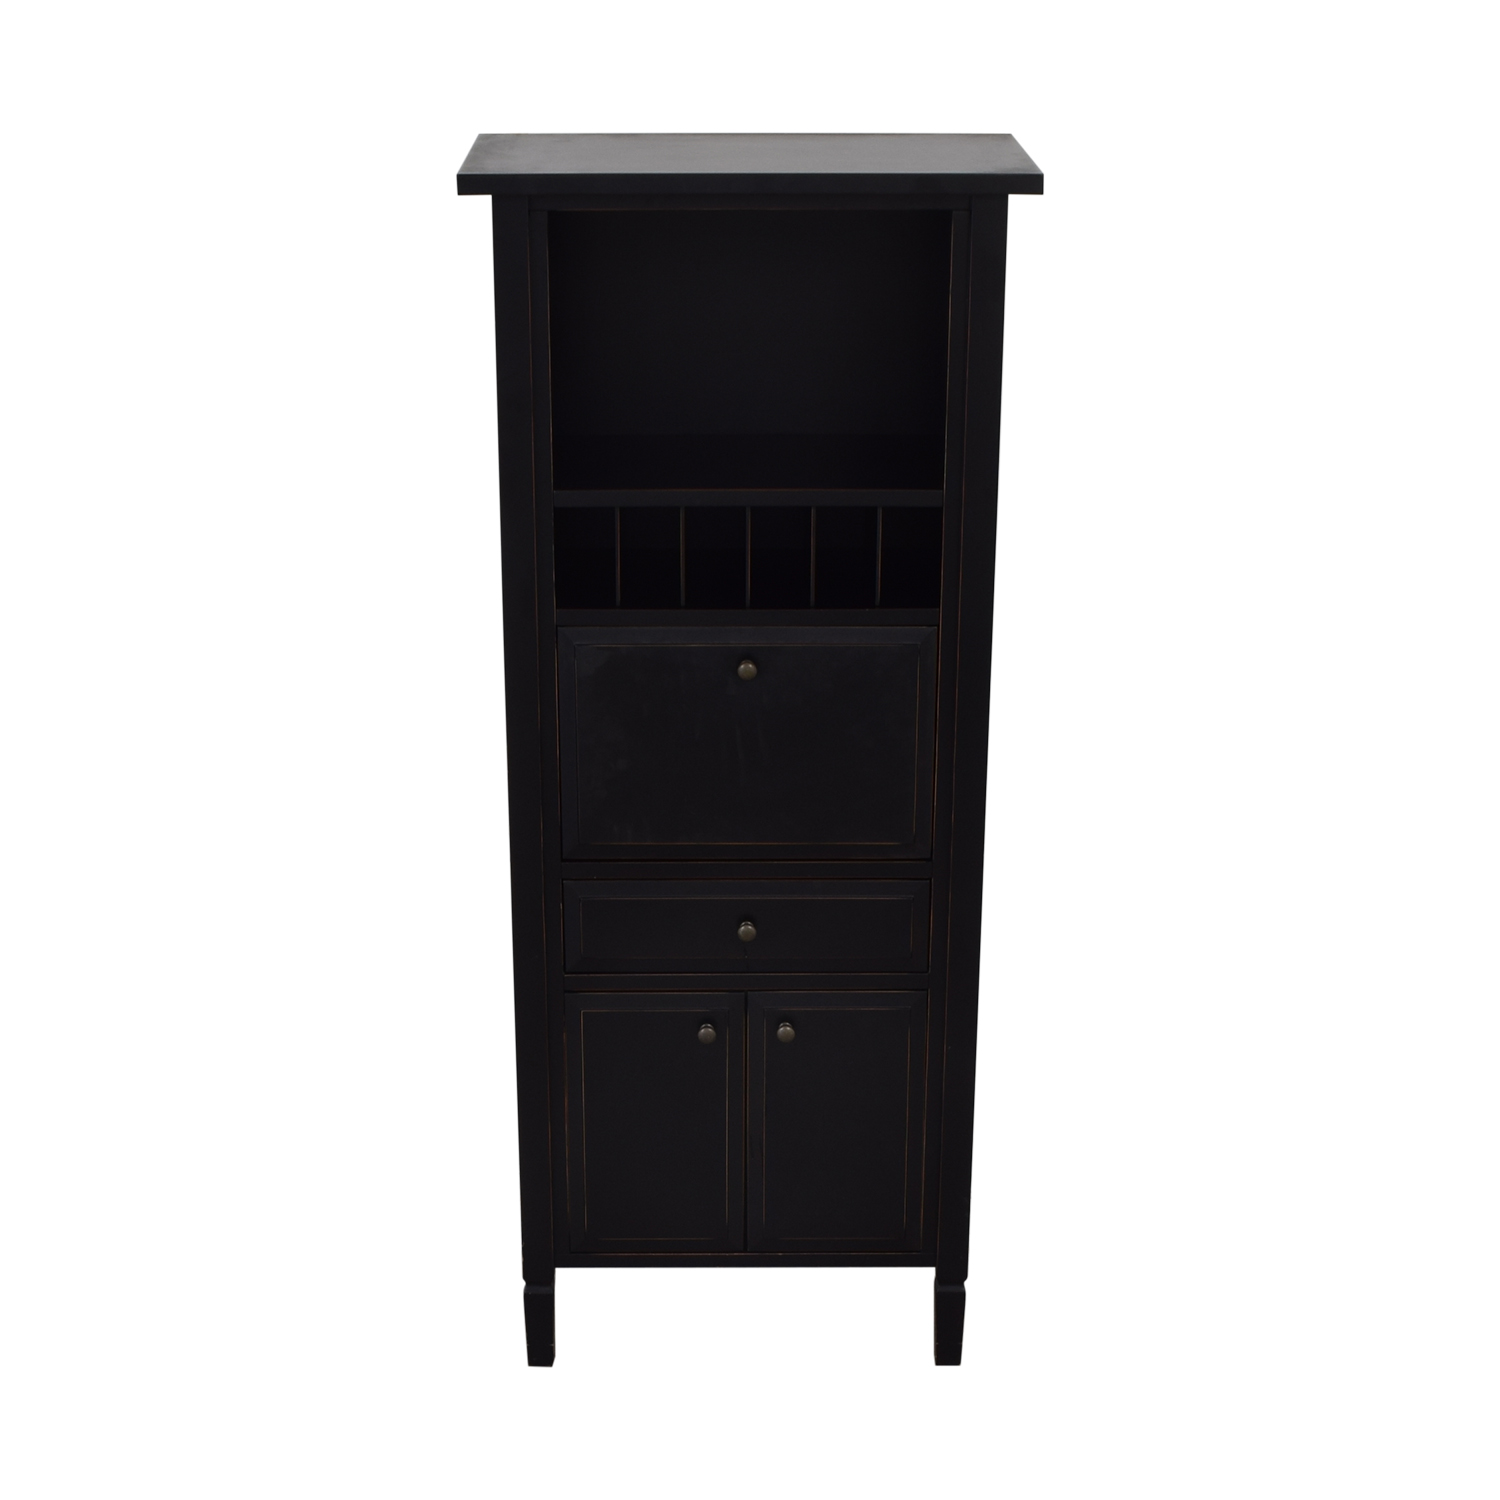 Crate & Barrel Storage Tall Cabinet / Cabinets & Sideboards